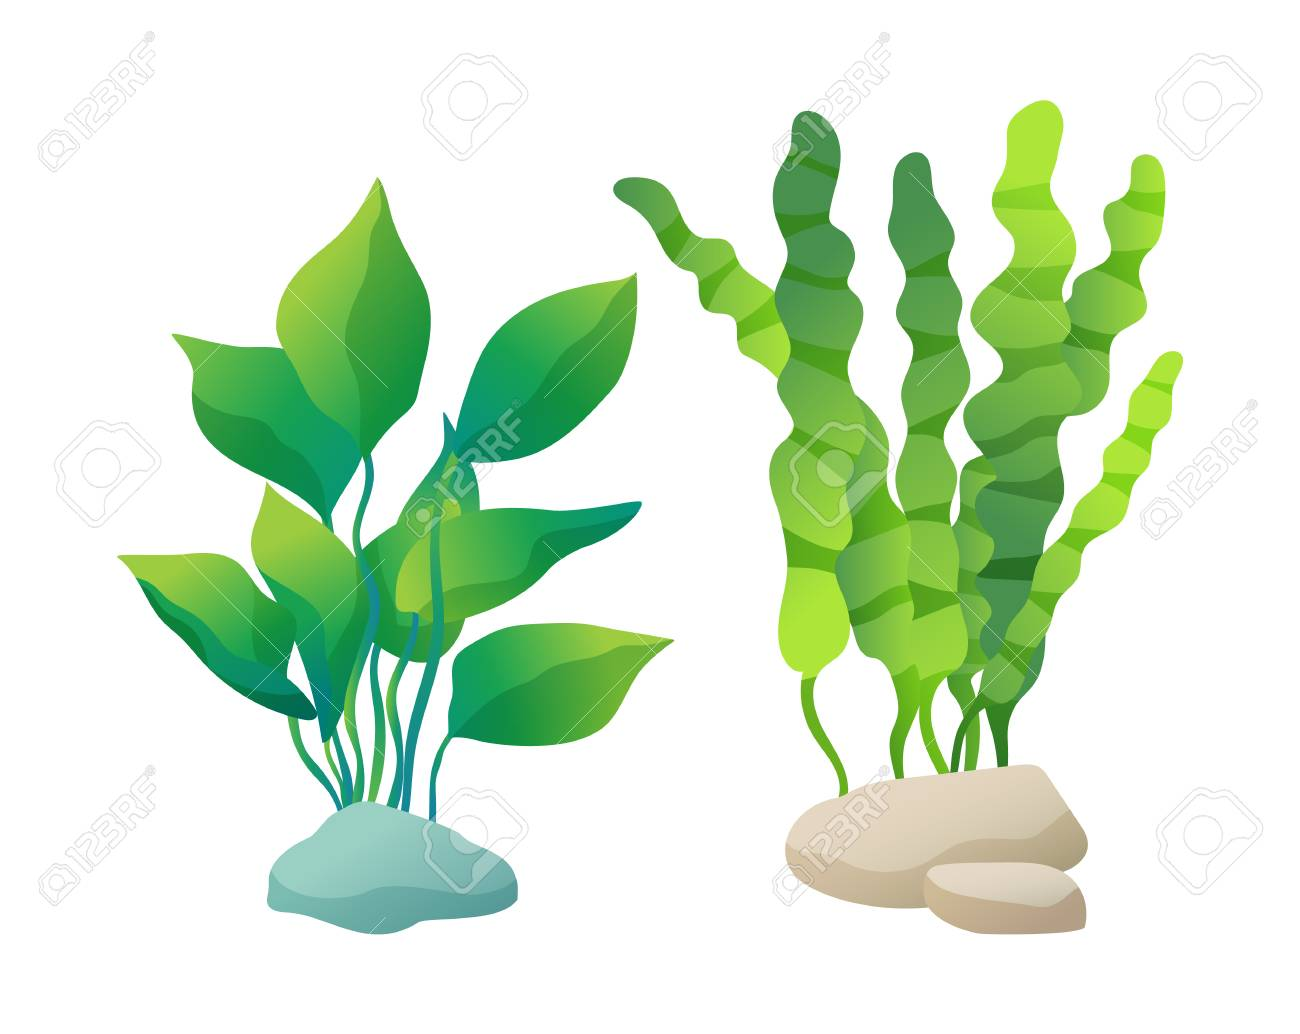 Sea or aquarium algae types vector illustration set on white. Straight and wavy seaweed with large and small leaved, green and violet colored poster. - 110930226